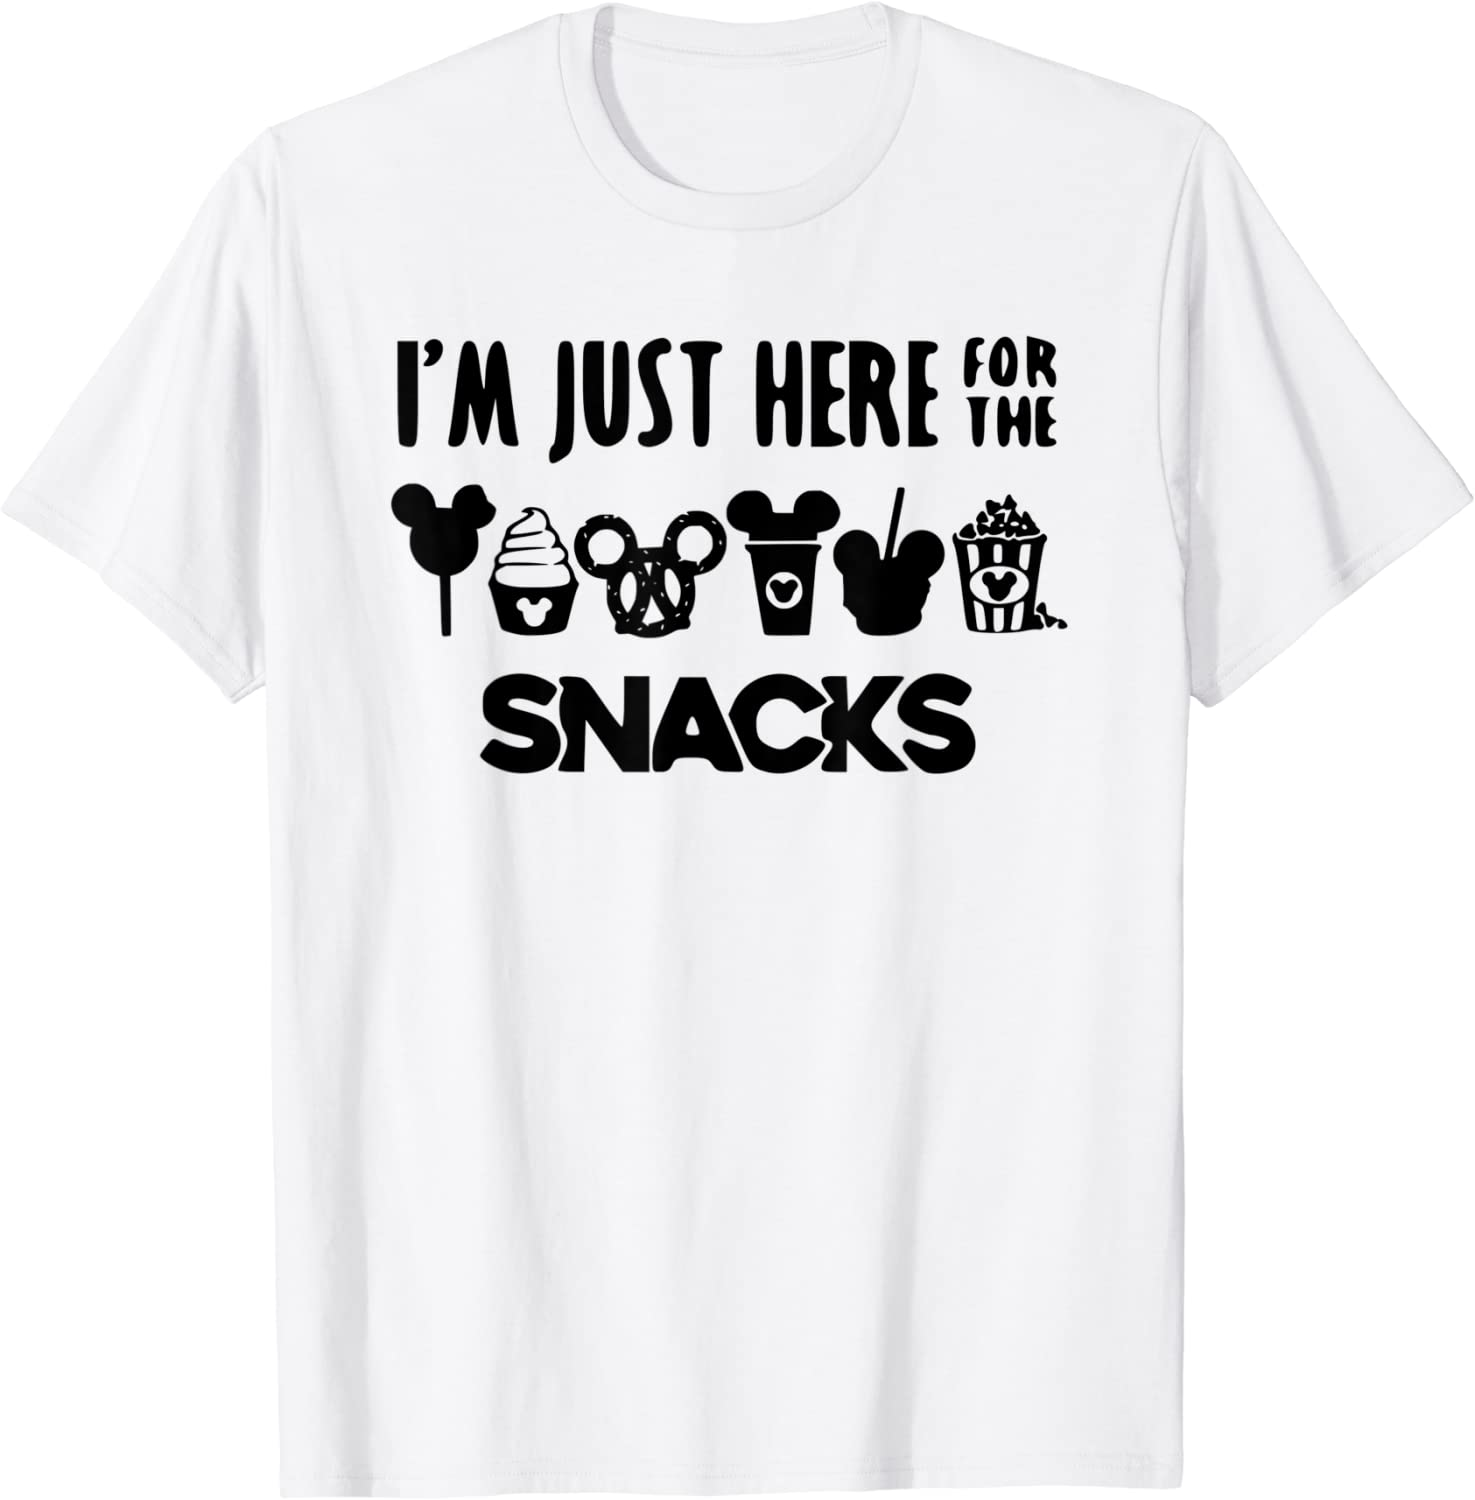 Here for the Snacks Family Vacation T-Shirt